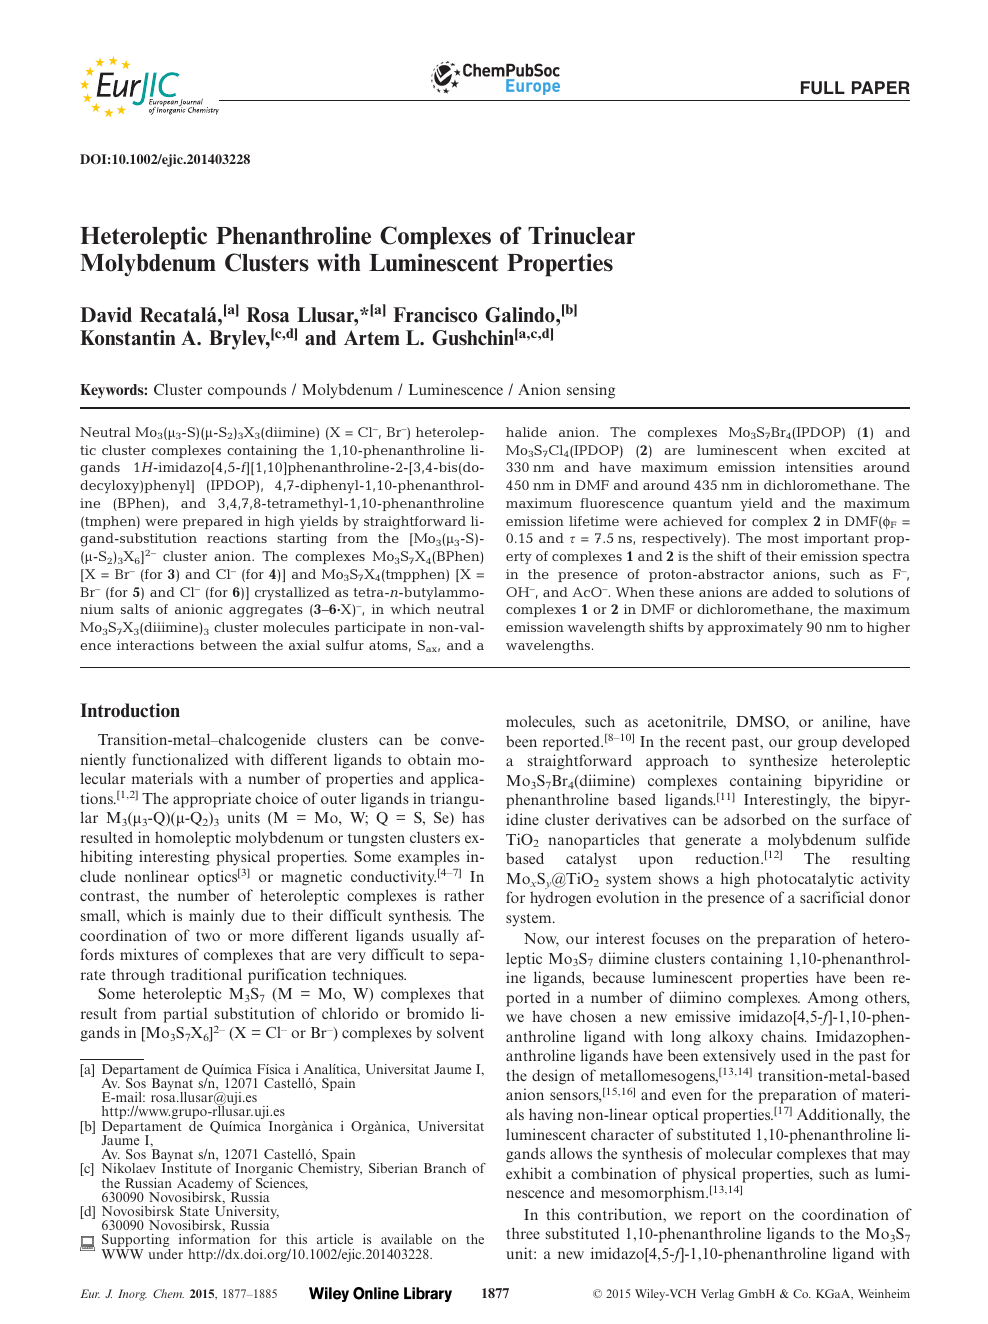 Heteroleptic Phenanthroline Complexes of Trinuclear Molybdenum